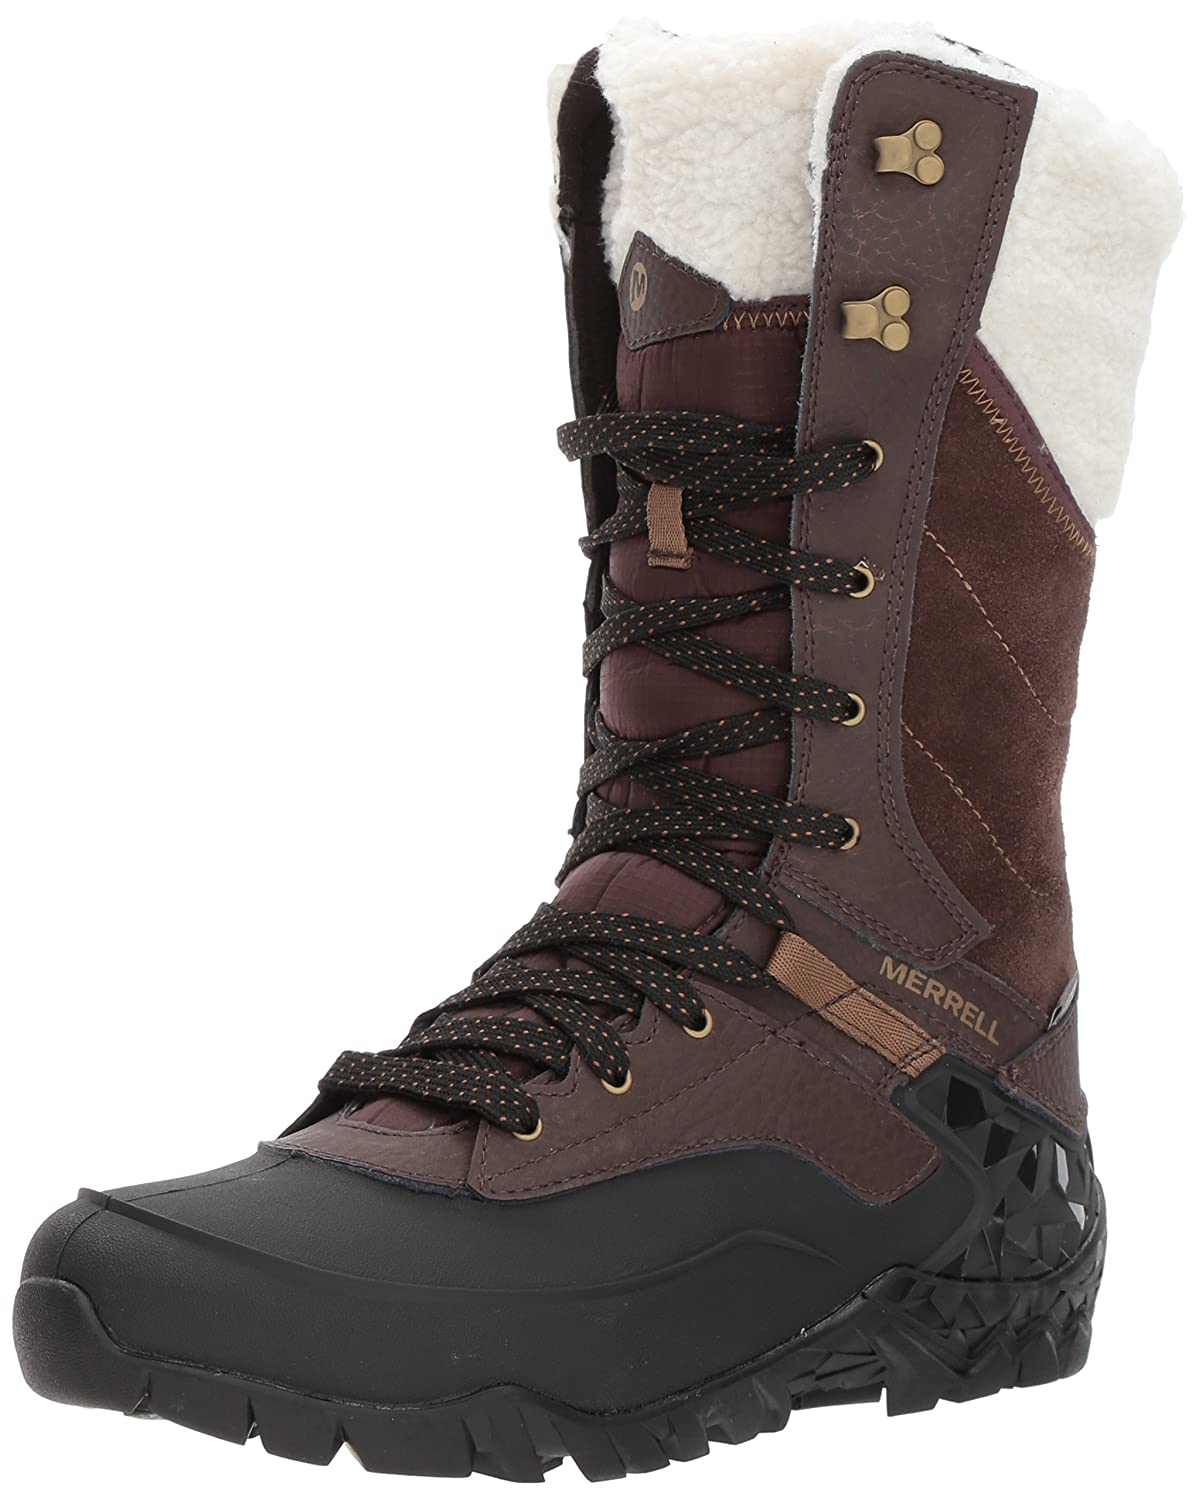 Merrell Women's Aurora Tall Ice Plus Waterproof Snow Boot B018WFB8BY 7.5 B(M) US|Espresso